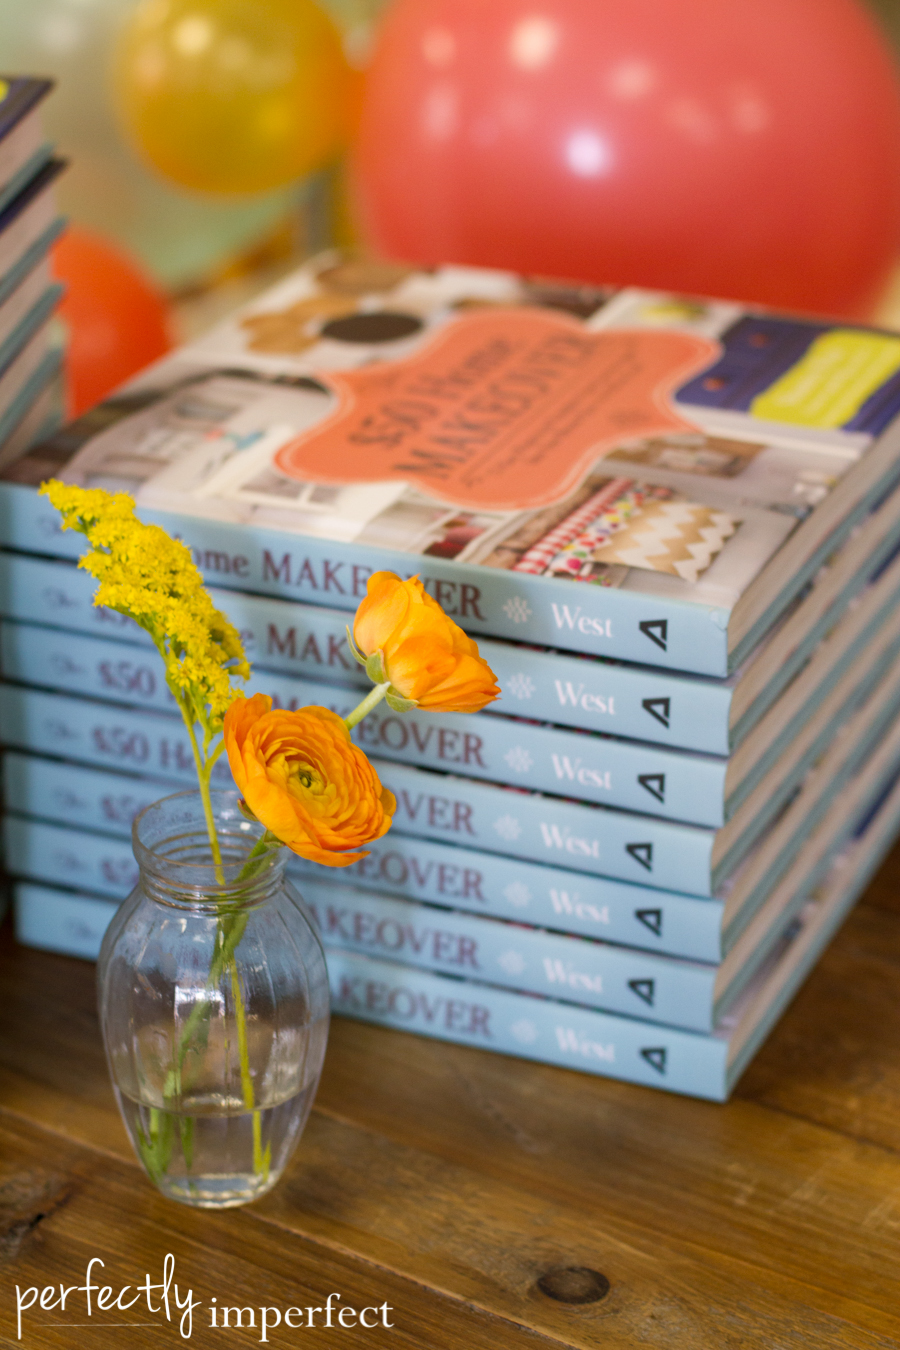 Perfectly Imperfect The $50 Home Makeover Book Launch Party-8